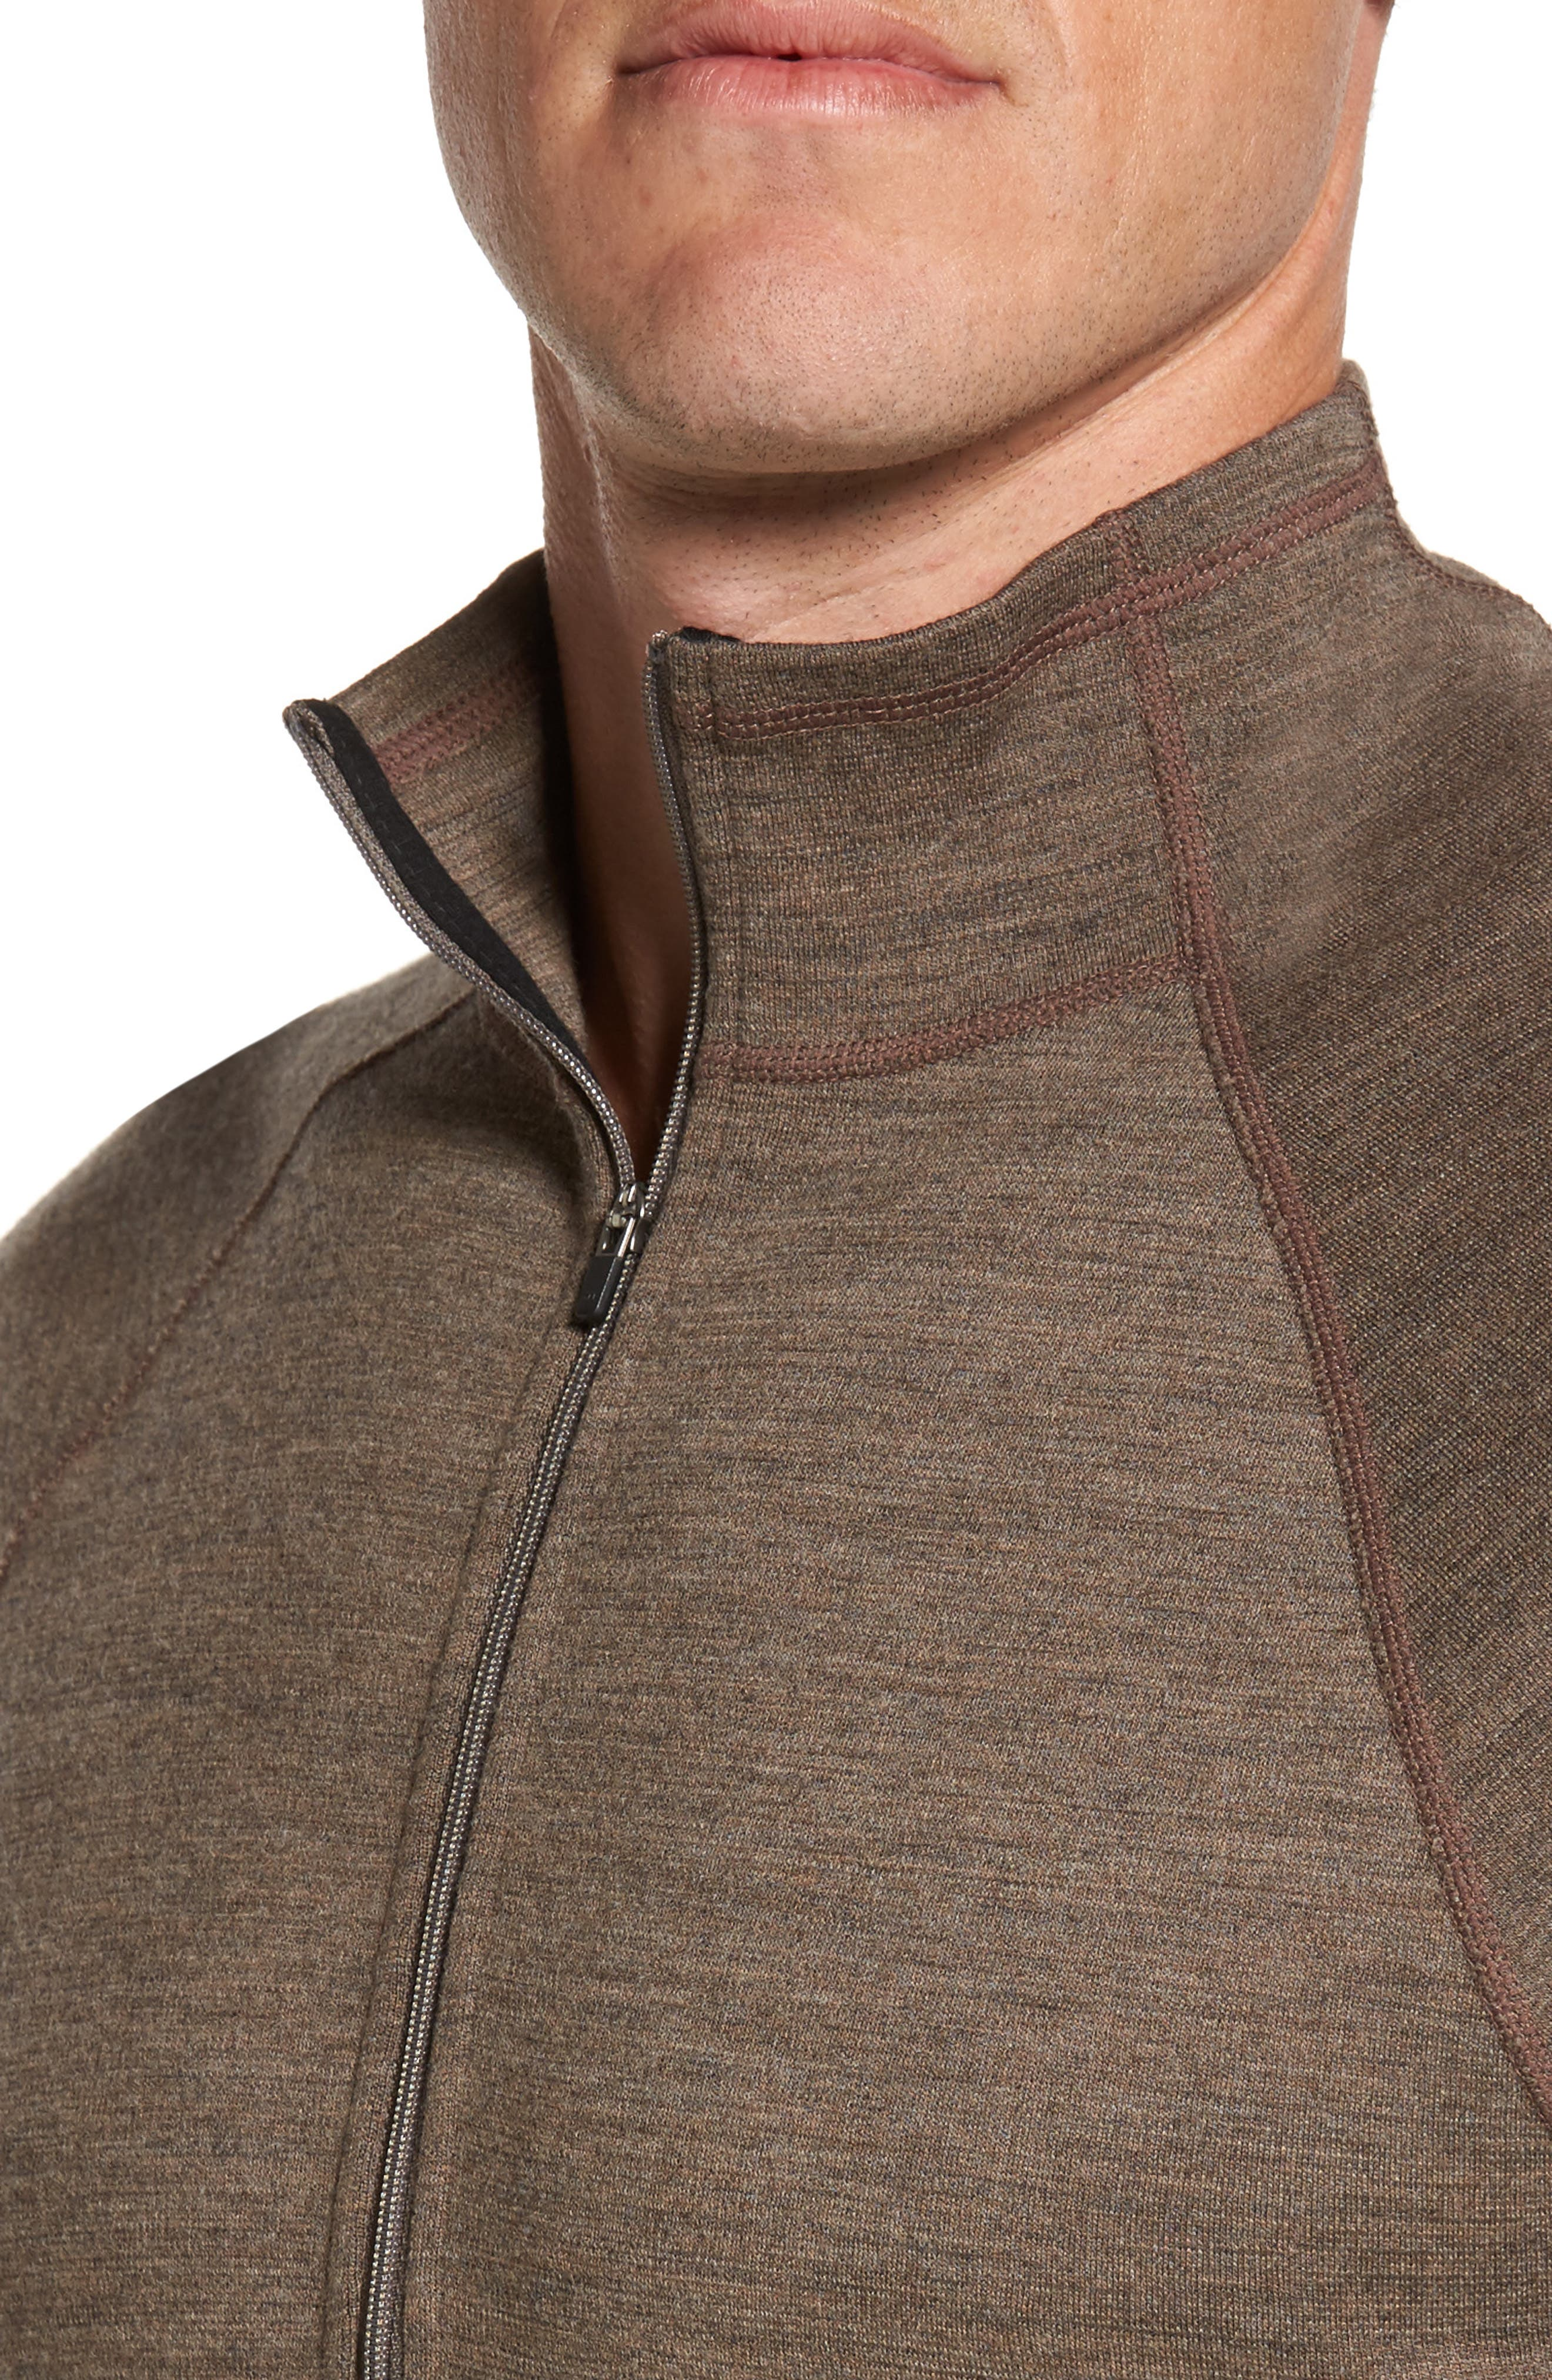 'Shak' Merino Wool Quarter Zip Top,                             Alternate thumbnail 4, color,                             250